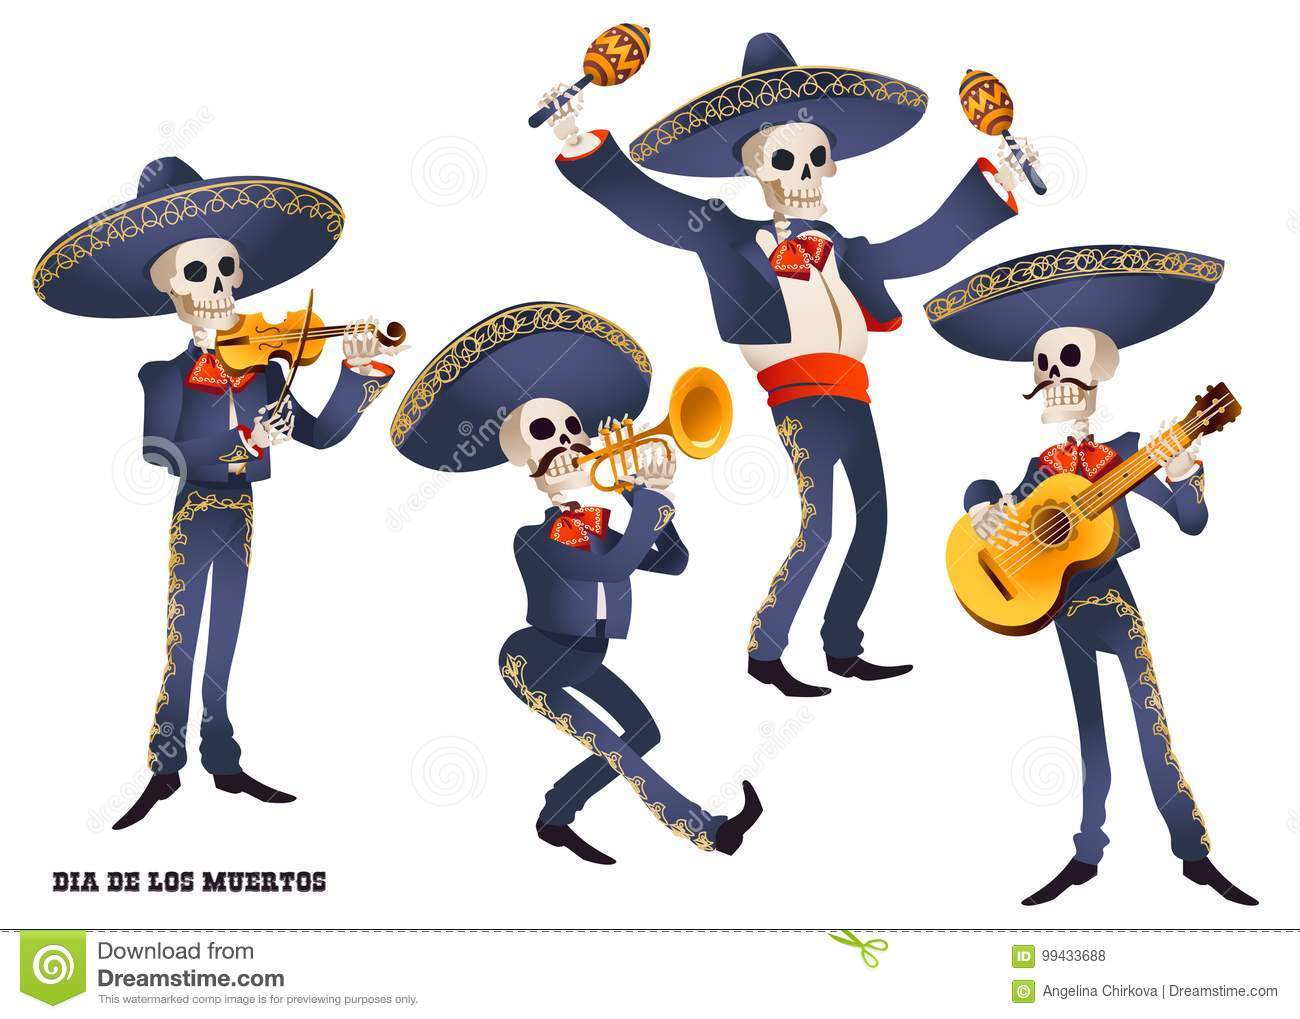 Download Dia De Muertos. Mariachi Band Musician Of Skeletons. Mexican Tradition. Stock Vector - Illustration of america, guitar: 99433688